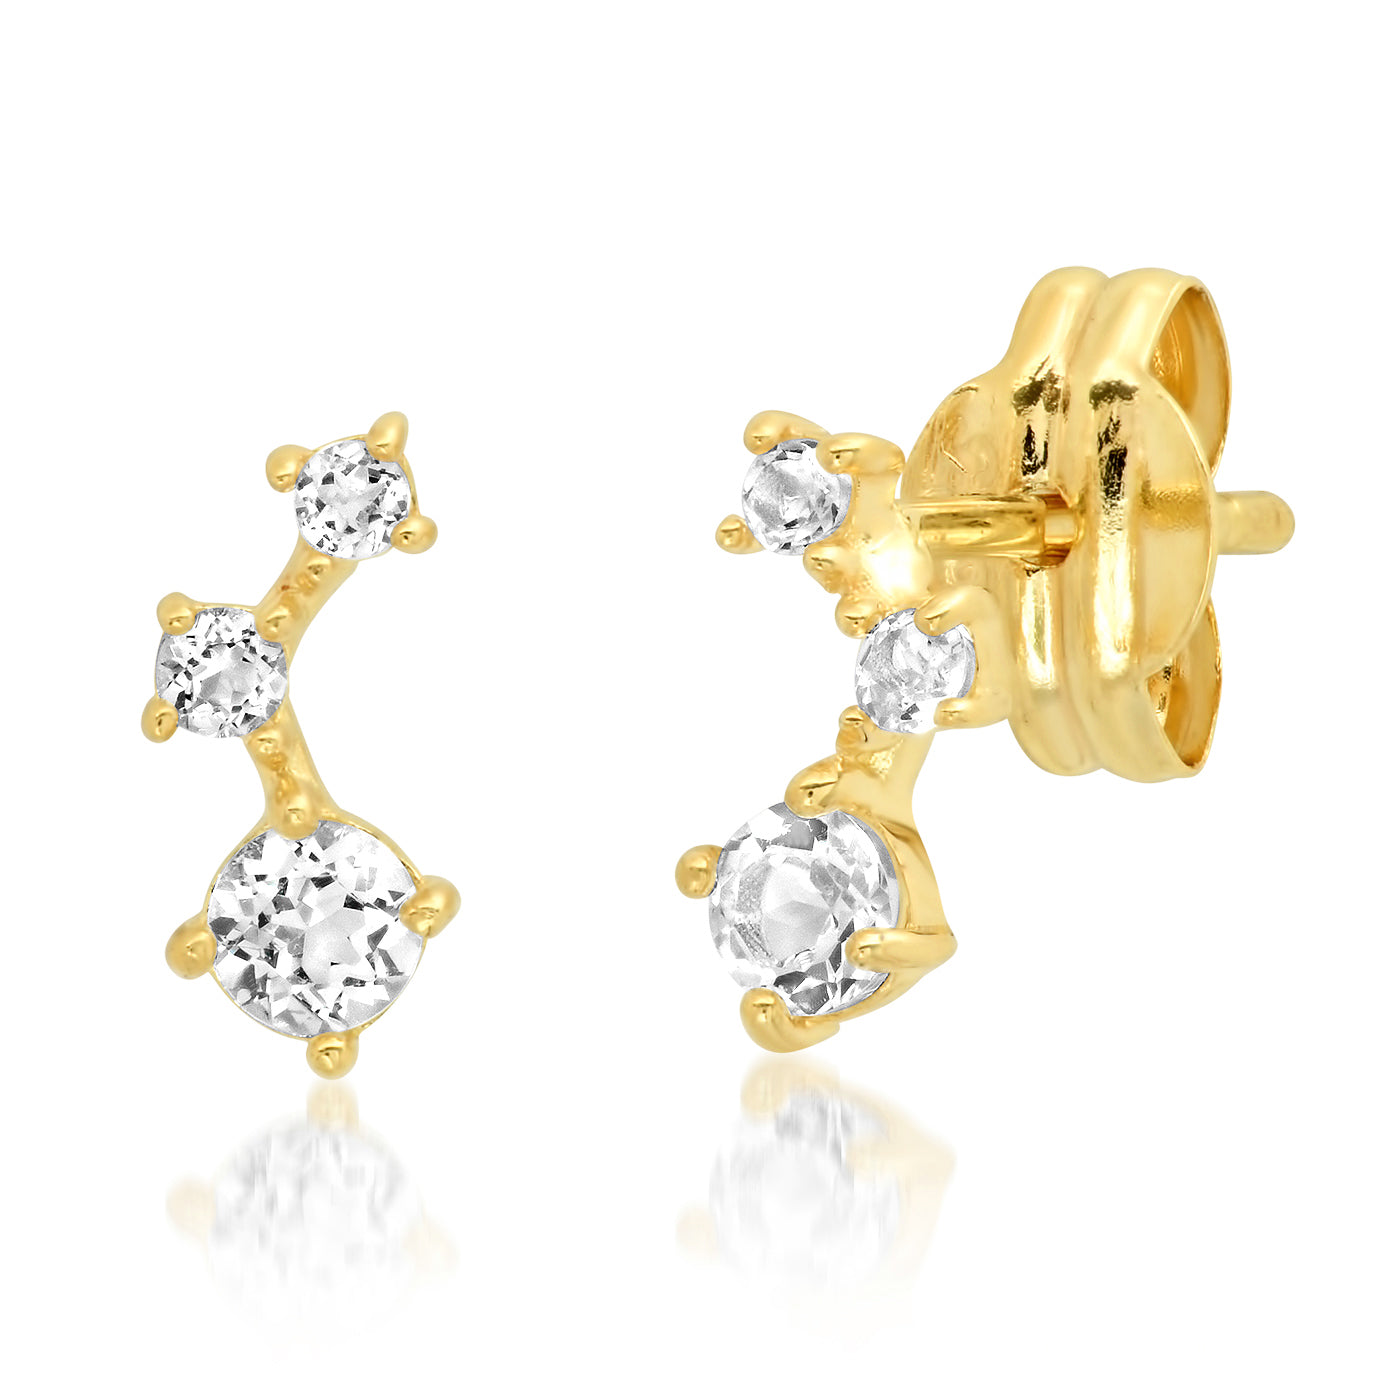 Tai Fine 14k Gold Climber Earrings with White Topaz